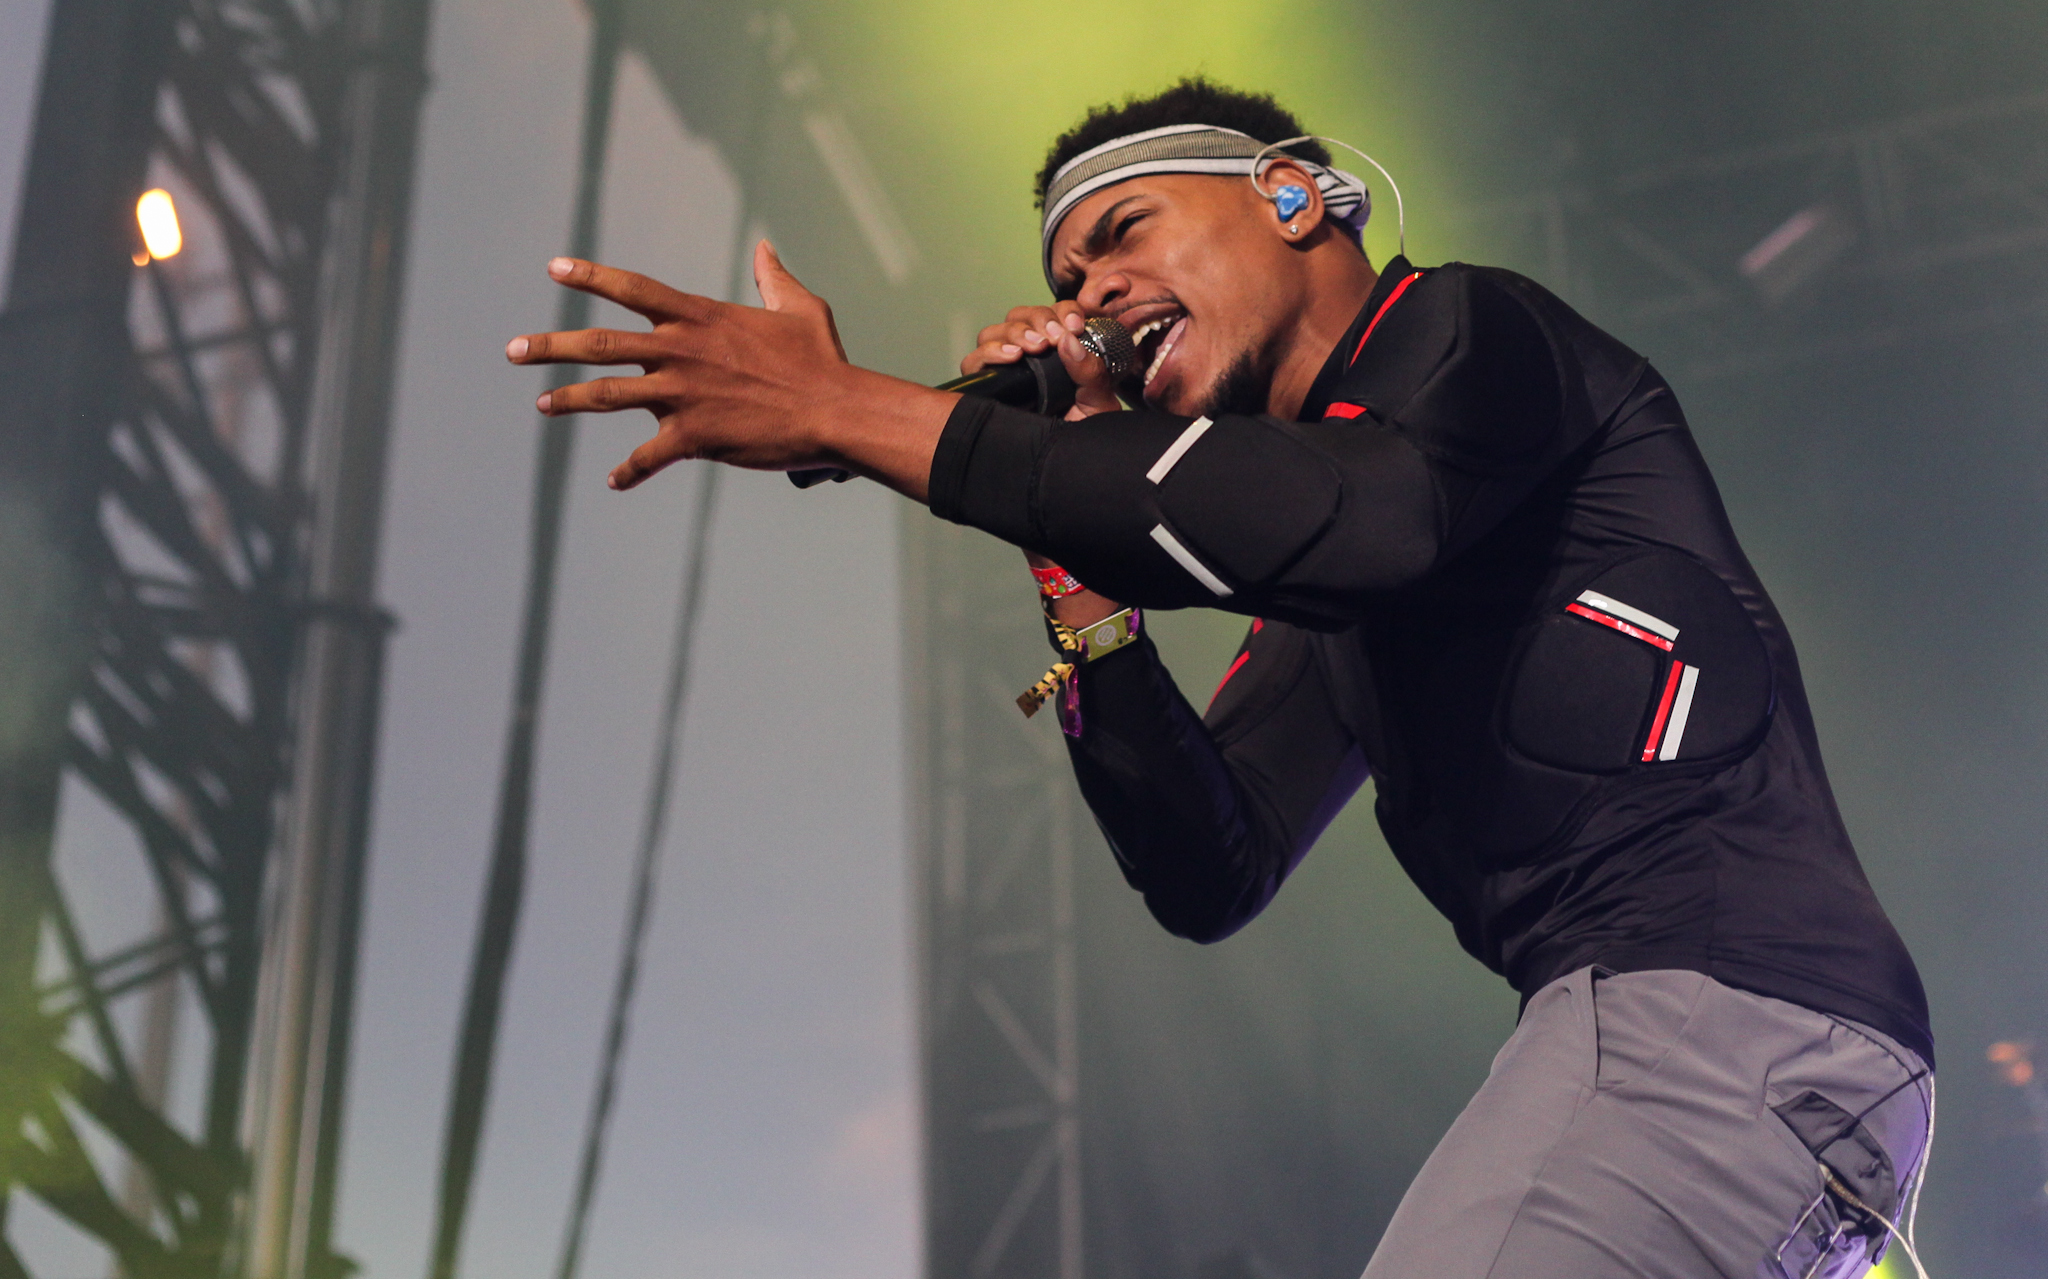 Chance The Rapper helped close out the weekend, playing to a sold out crowd on Sunday at Pitchfork Music Festival, July 19, 2015.